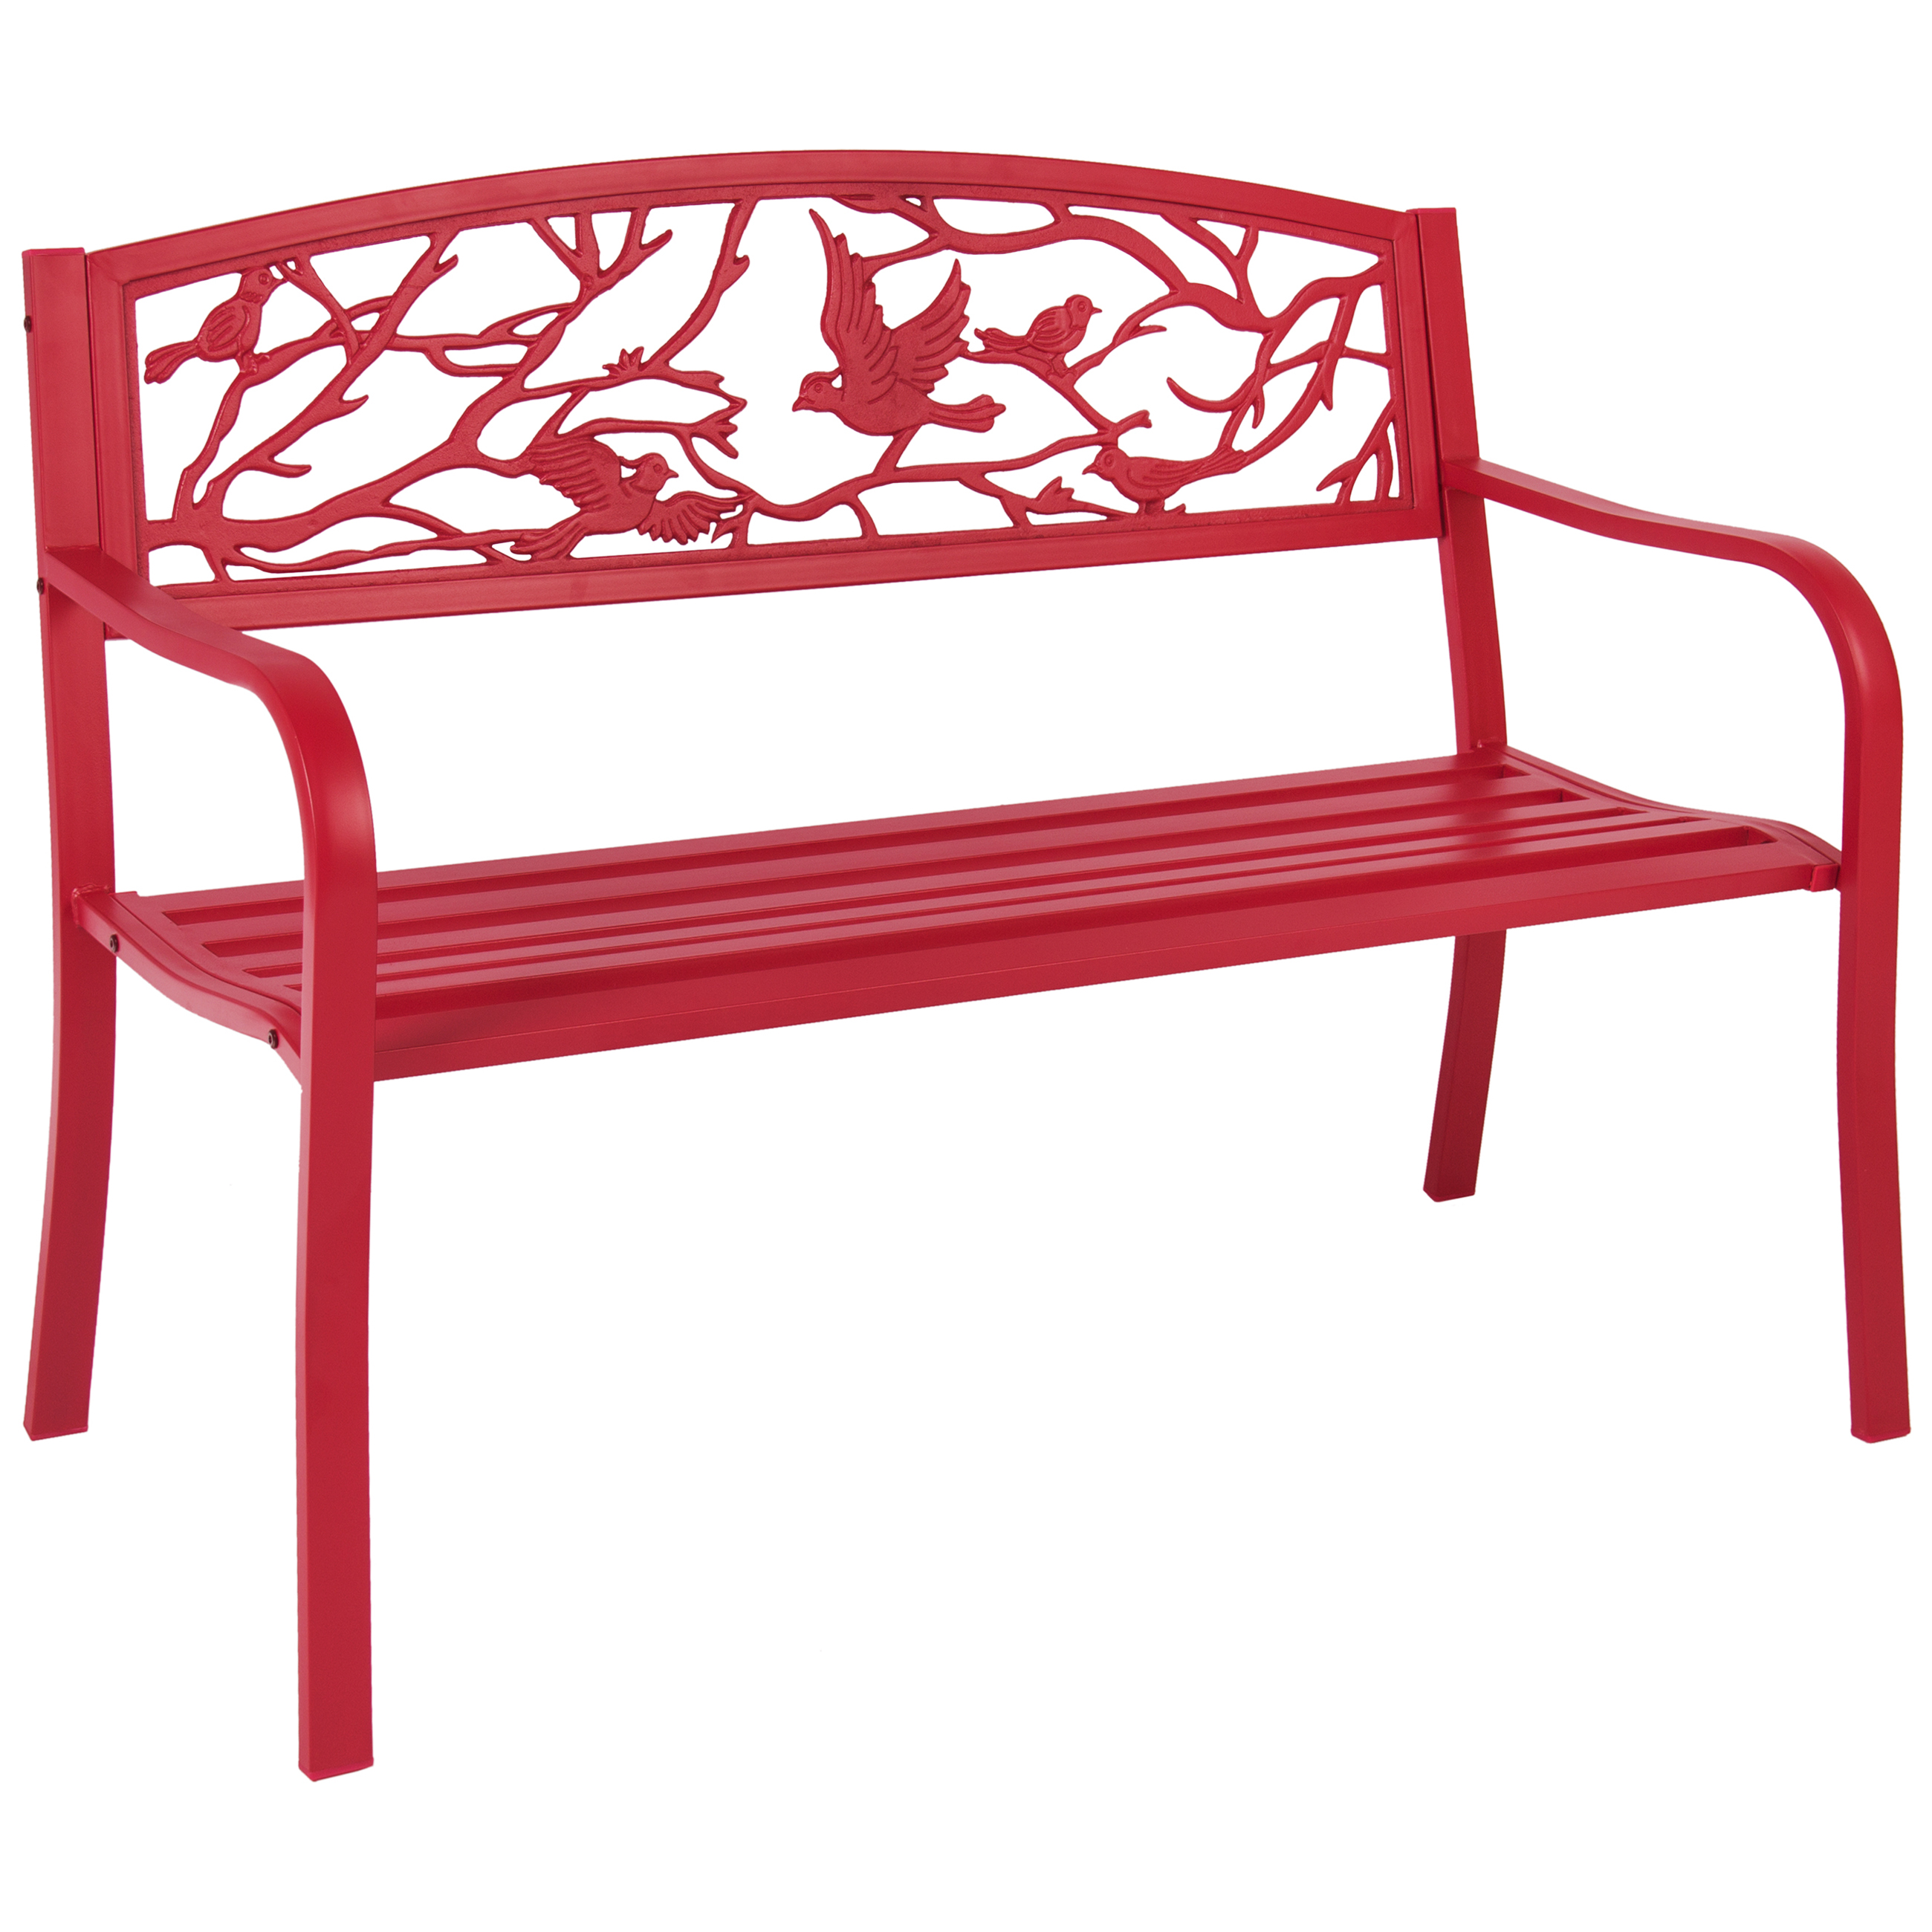 Best Choice Products Rose Red Steel Patio Garden Park Bench Outdoor Living Patio Furniture